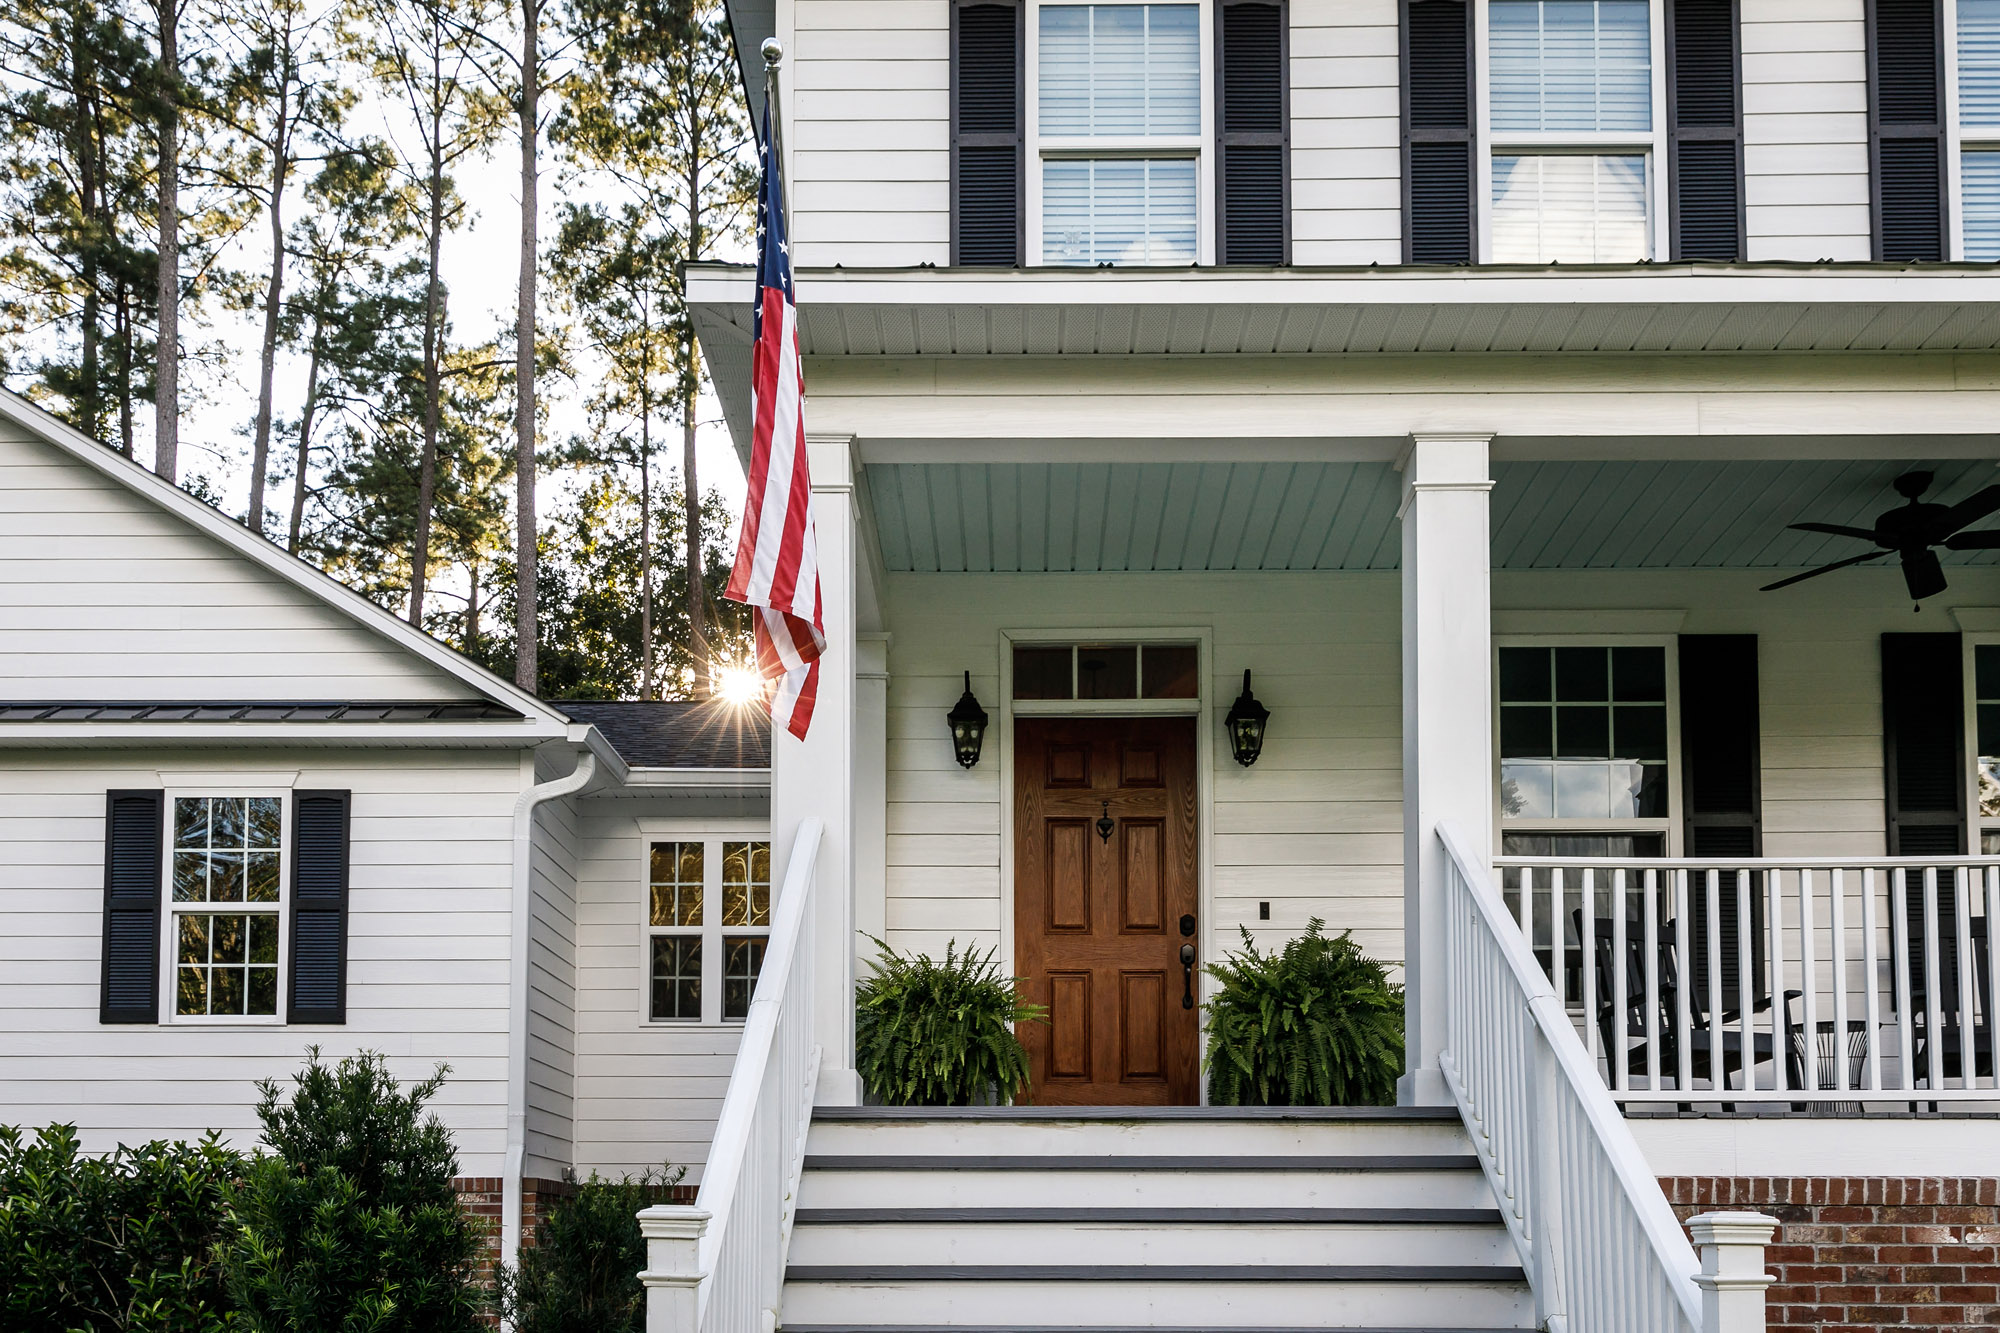 Tips for selling your home the right way